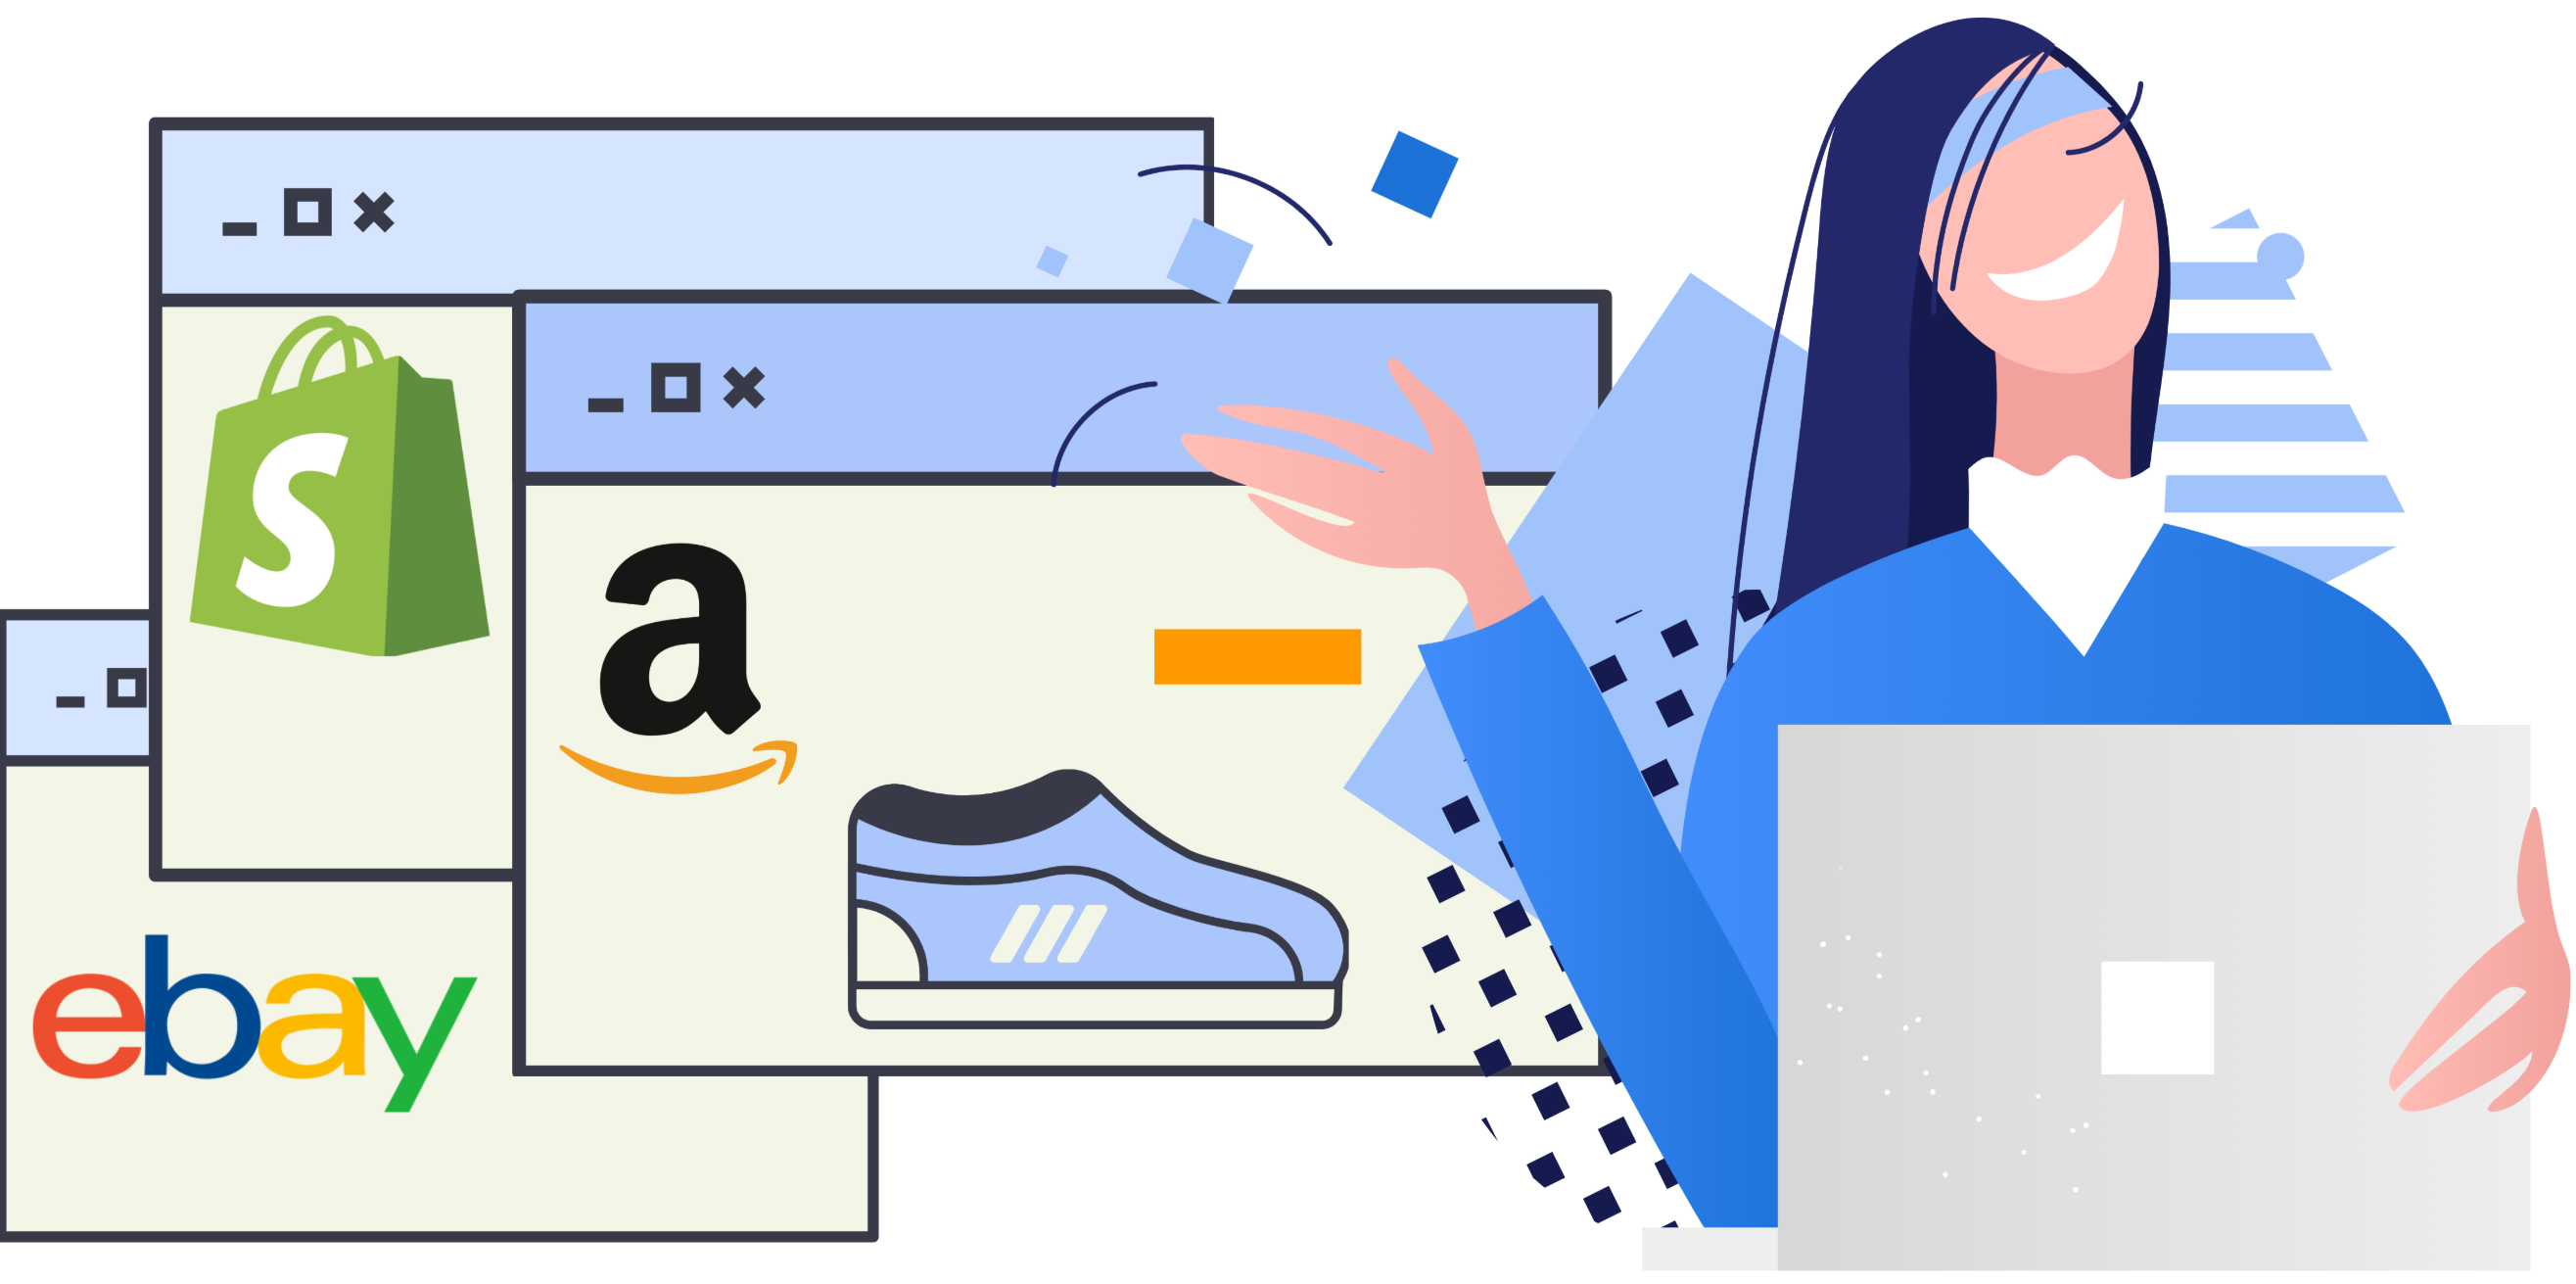 Amazon to eBay and Shopify in under 5 minutes.